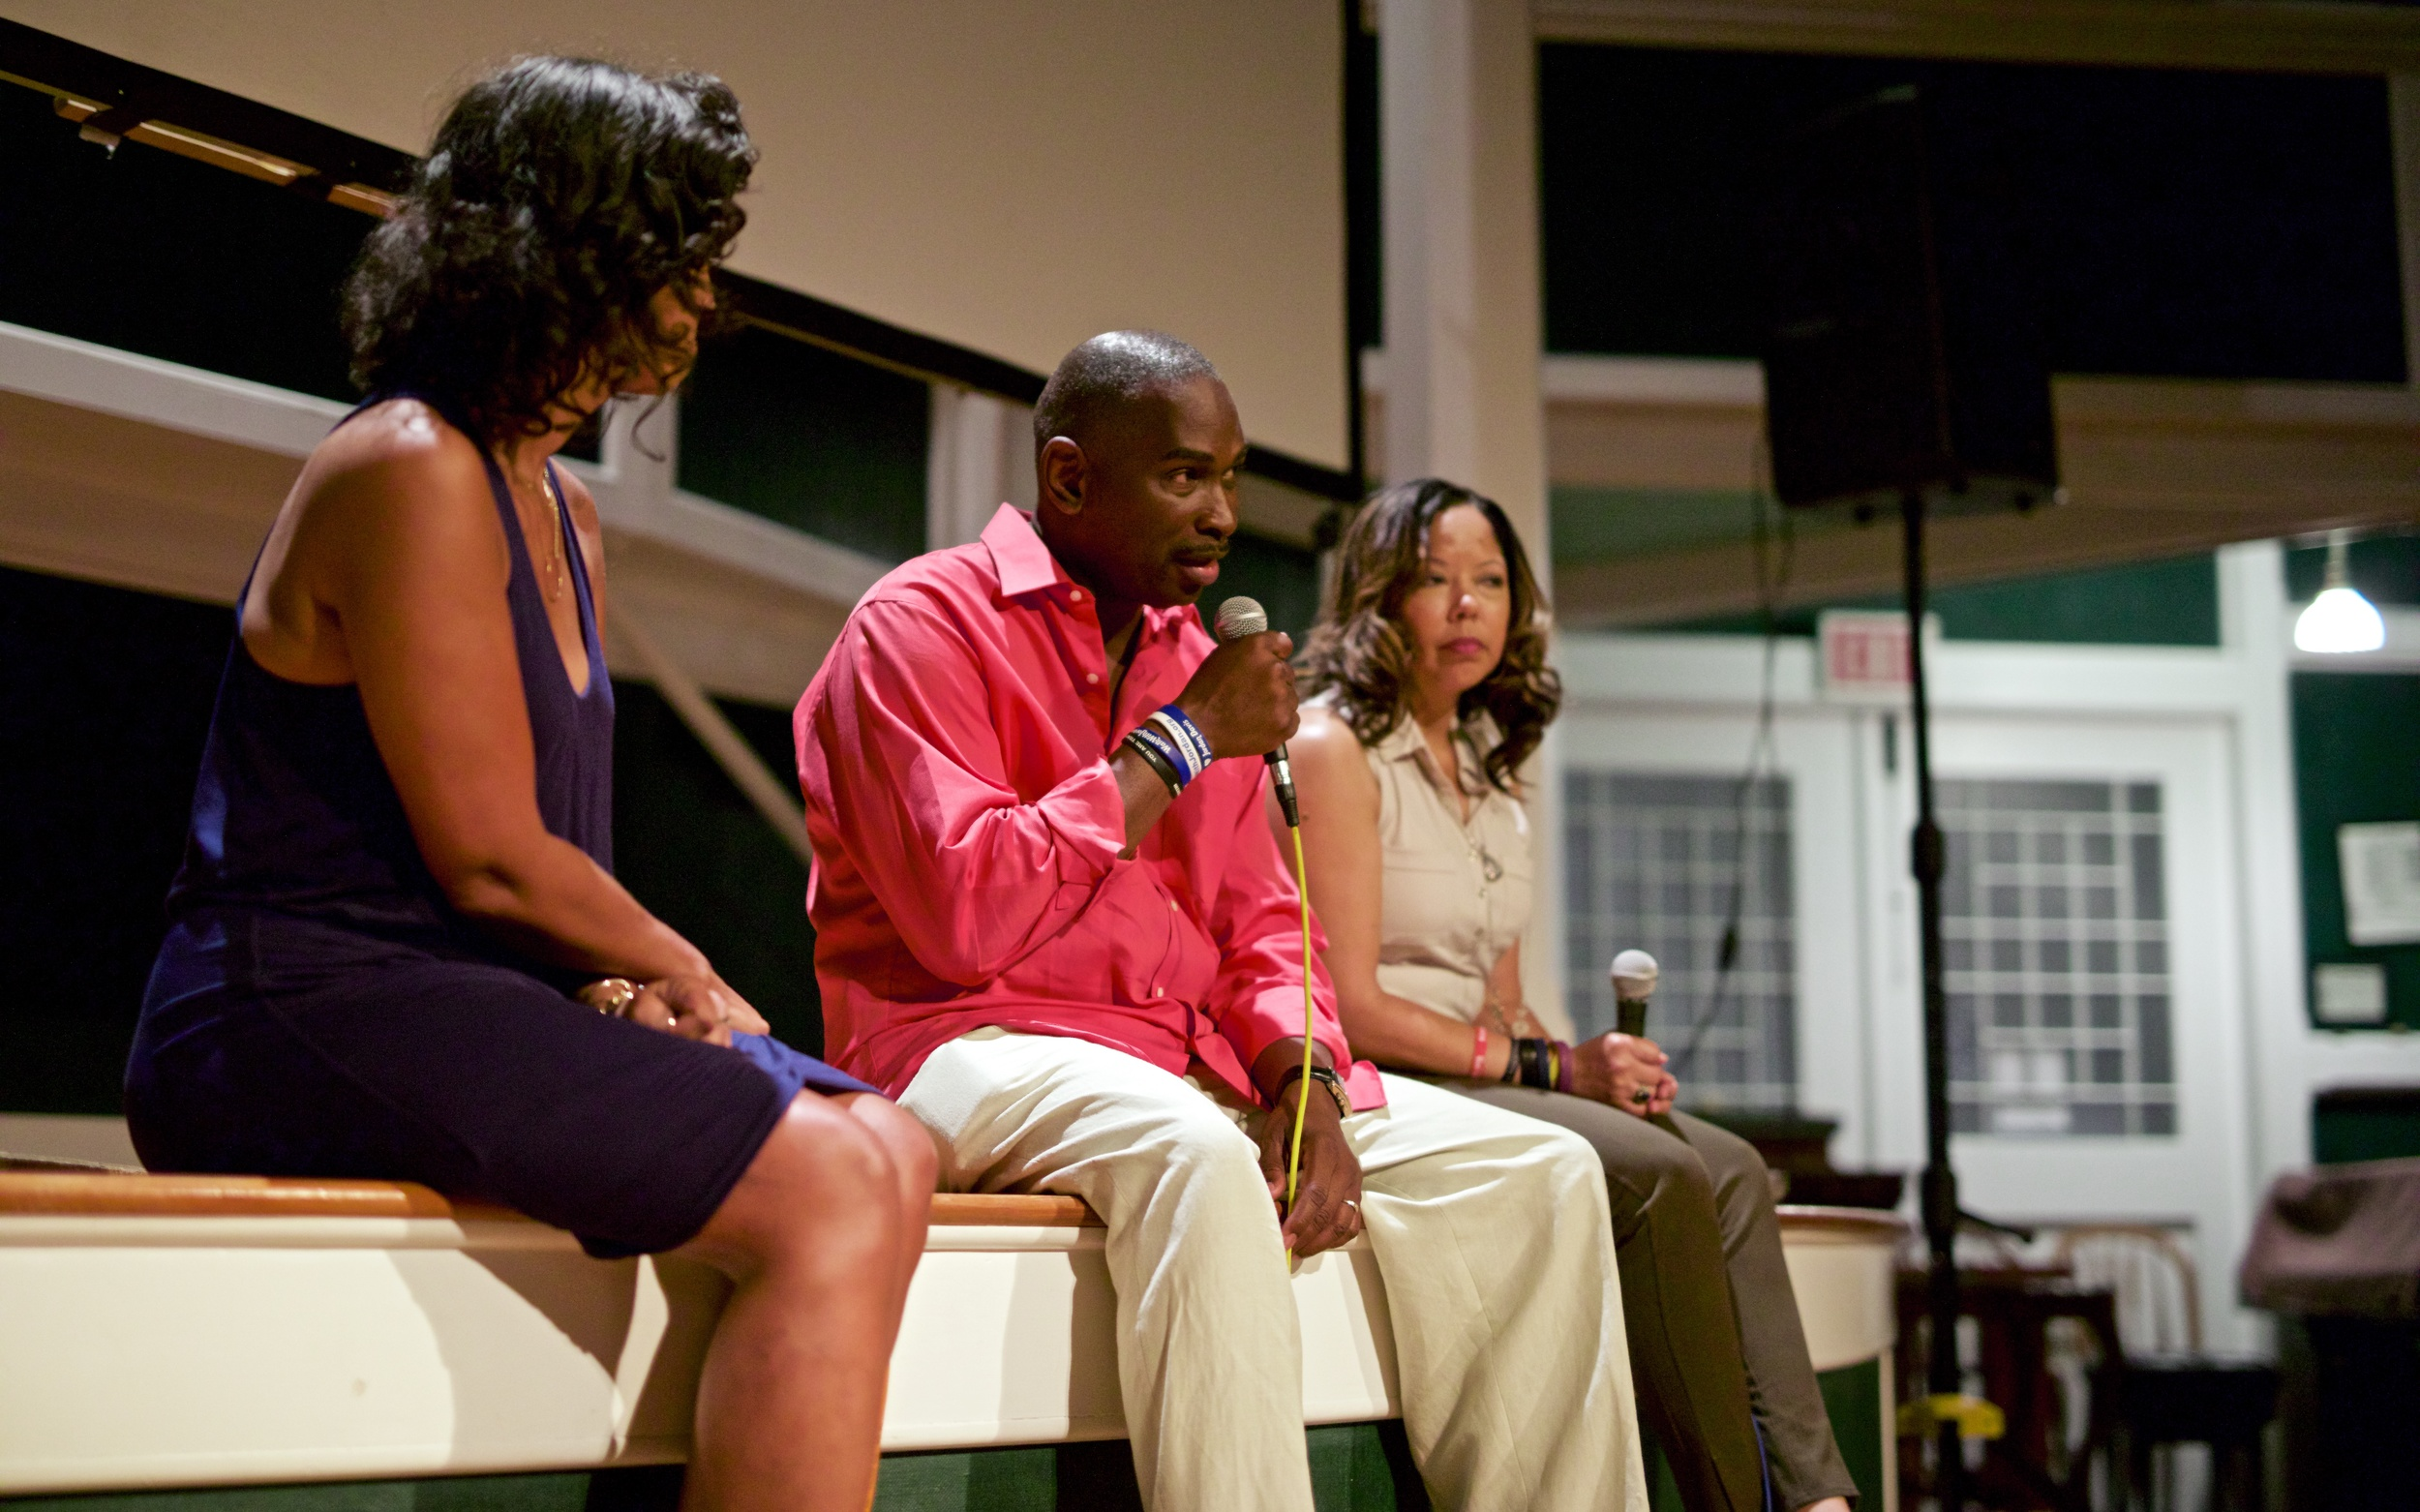 The parents of Jordan Davis, Ron Davis and Lucia McBath, talk with moderator Caroline Graves after the screening of 3 1/2 MINUTES, TEN BULLETS on August 7, 2015,at Union Chapel in Oak Bluffs. Photo by Reece Robinson.